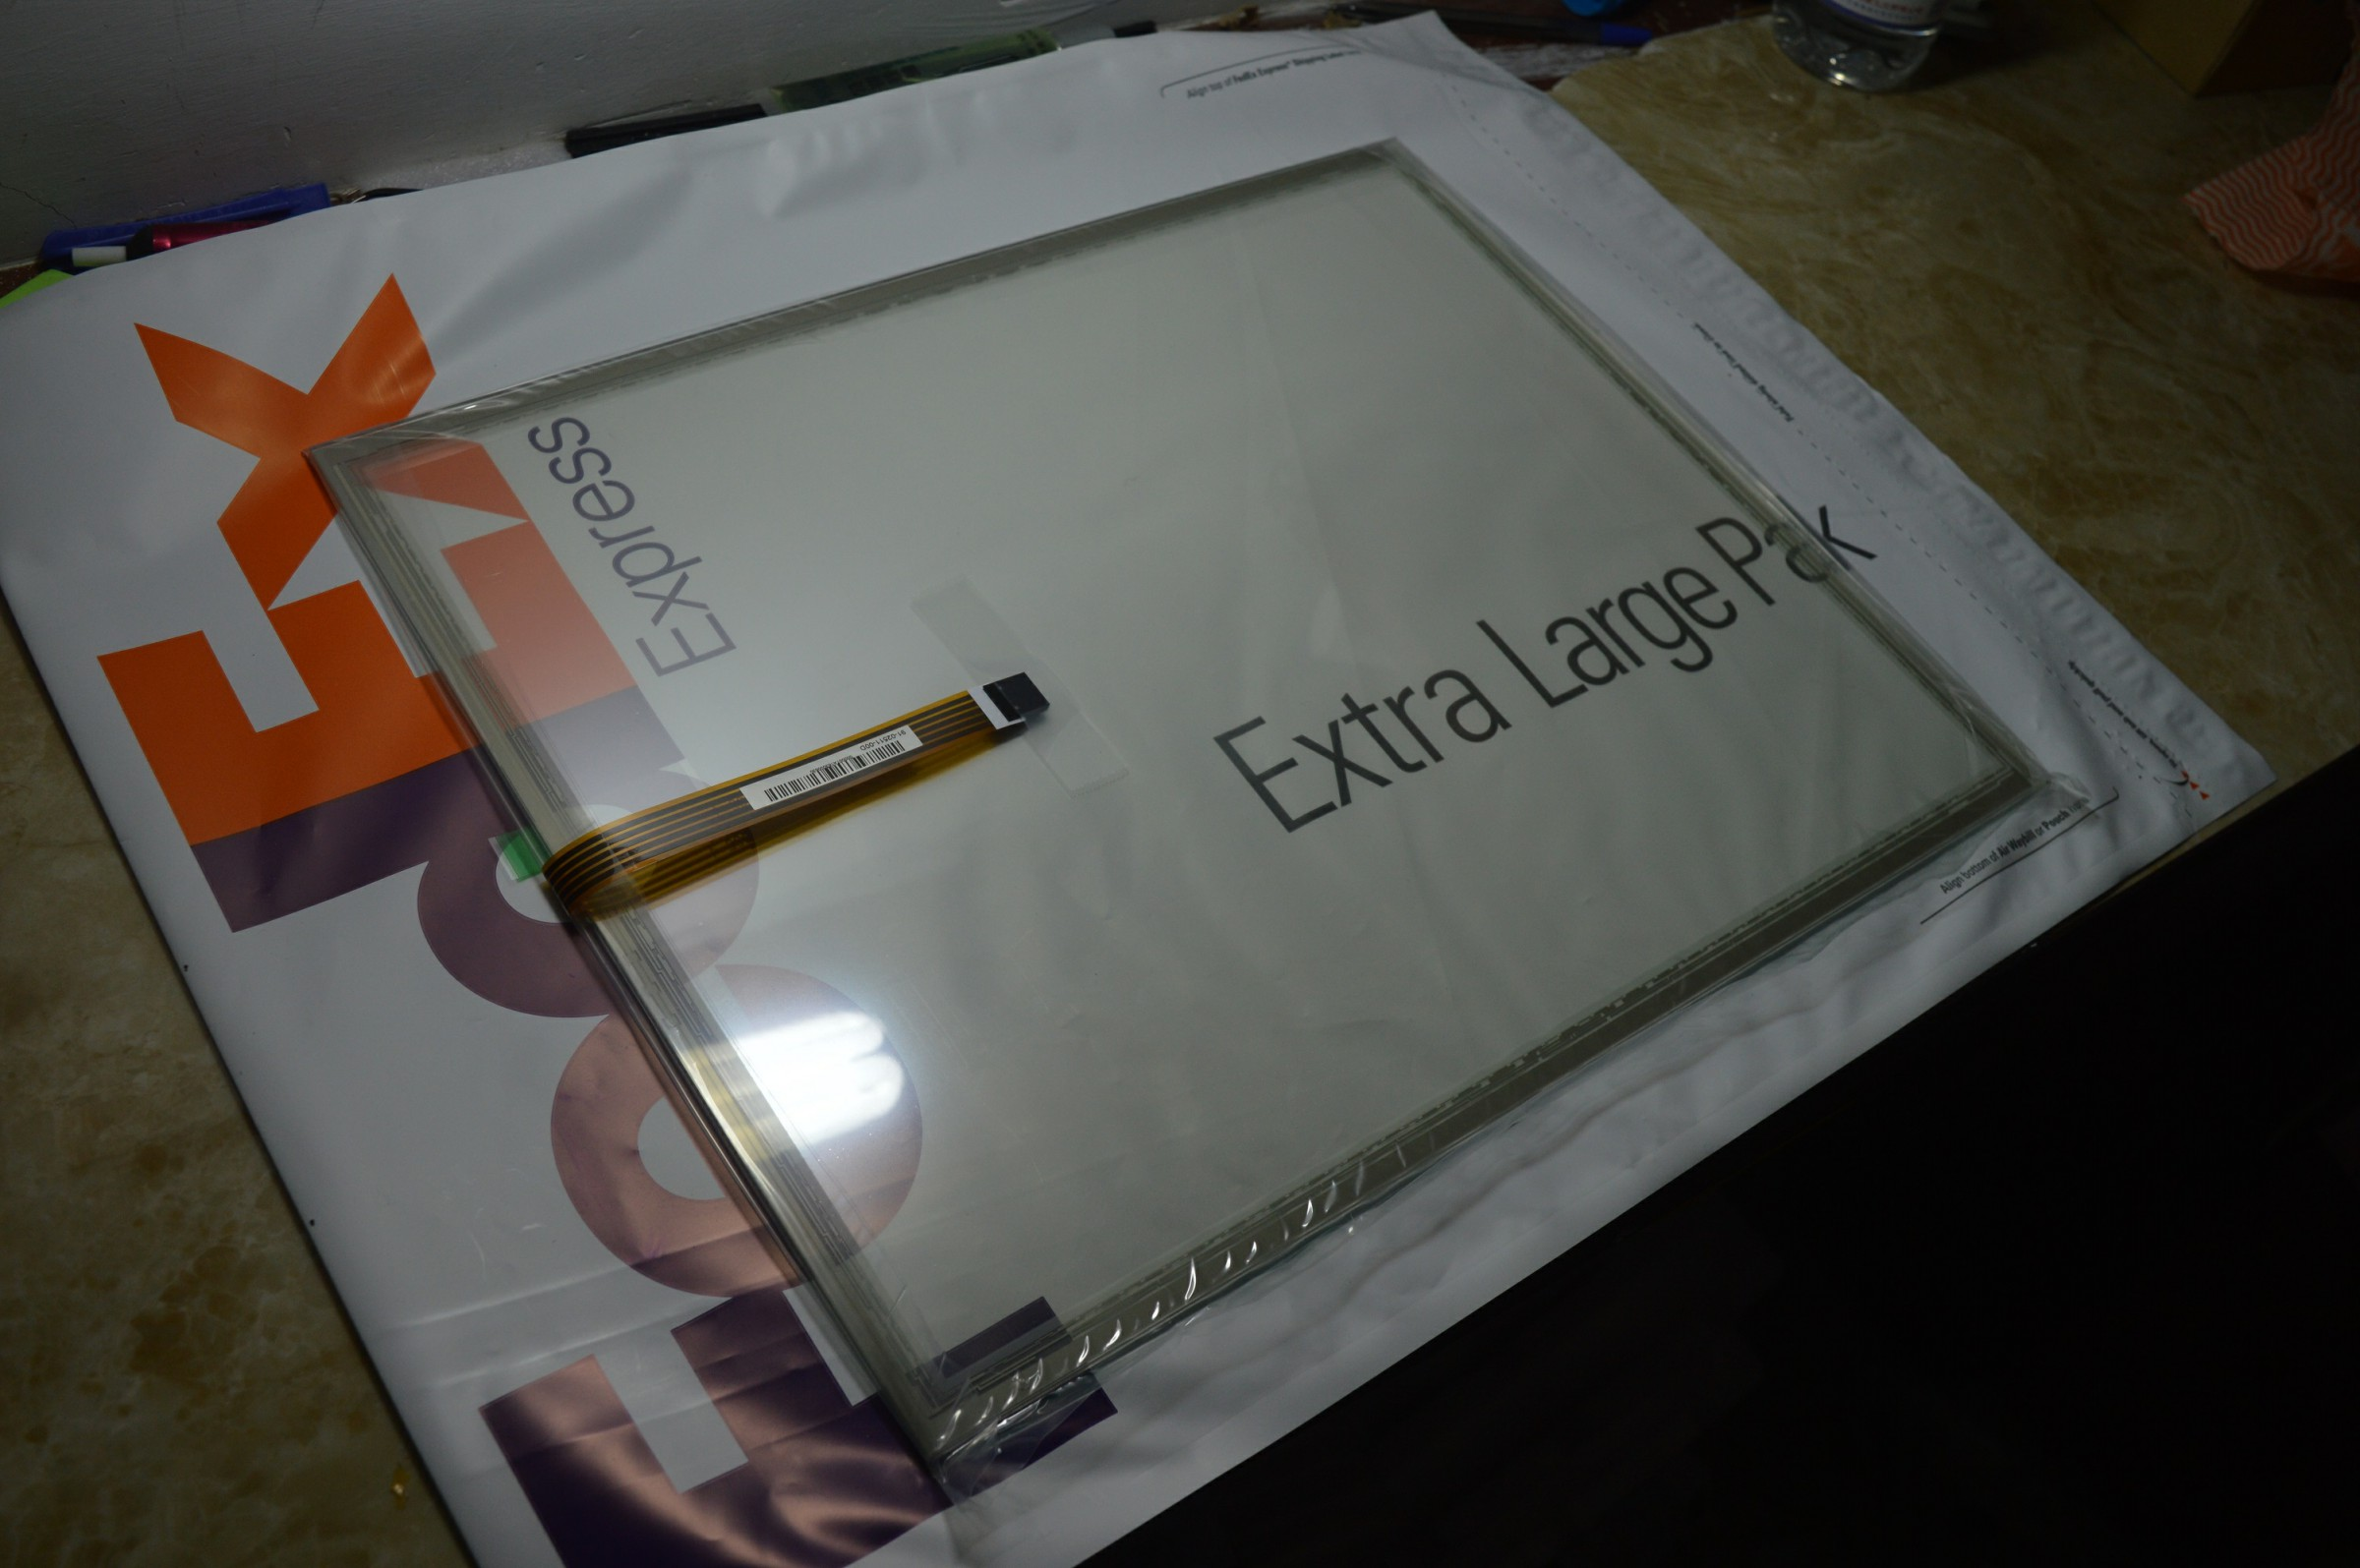 AMT2507 AMT 2507 HMI Industrial Input Devices touch screen panel membrane touchscreen AMT 5Pin 10.6 inch,FAST SHIPPING